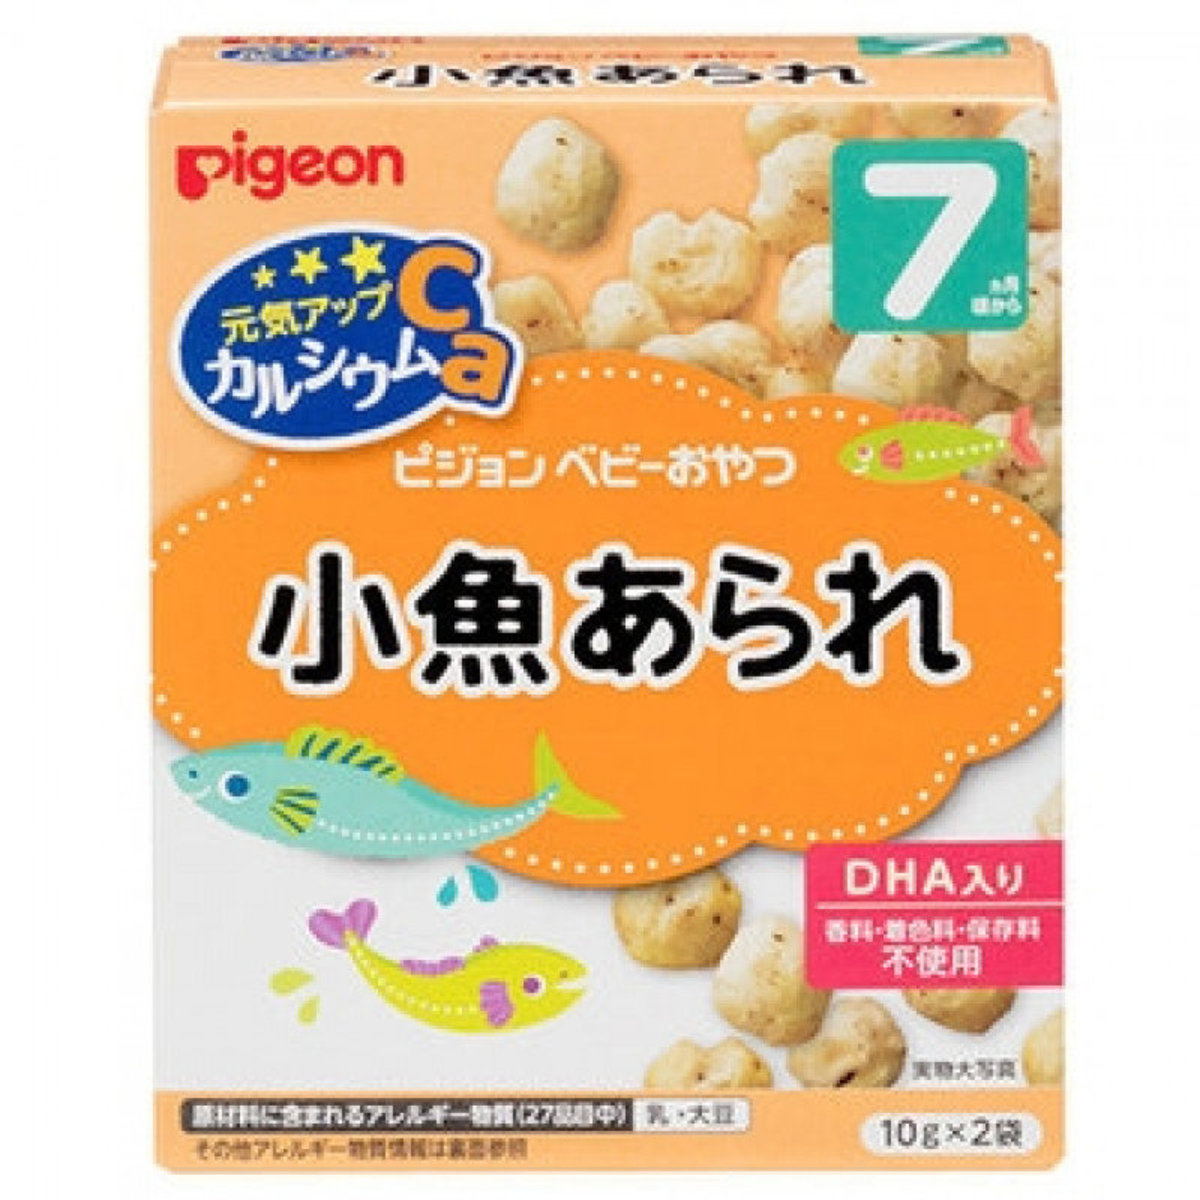 PIGEON DHA Poppy Rice Cake 20g for infants 7 months or older